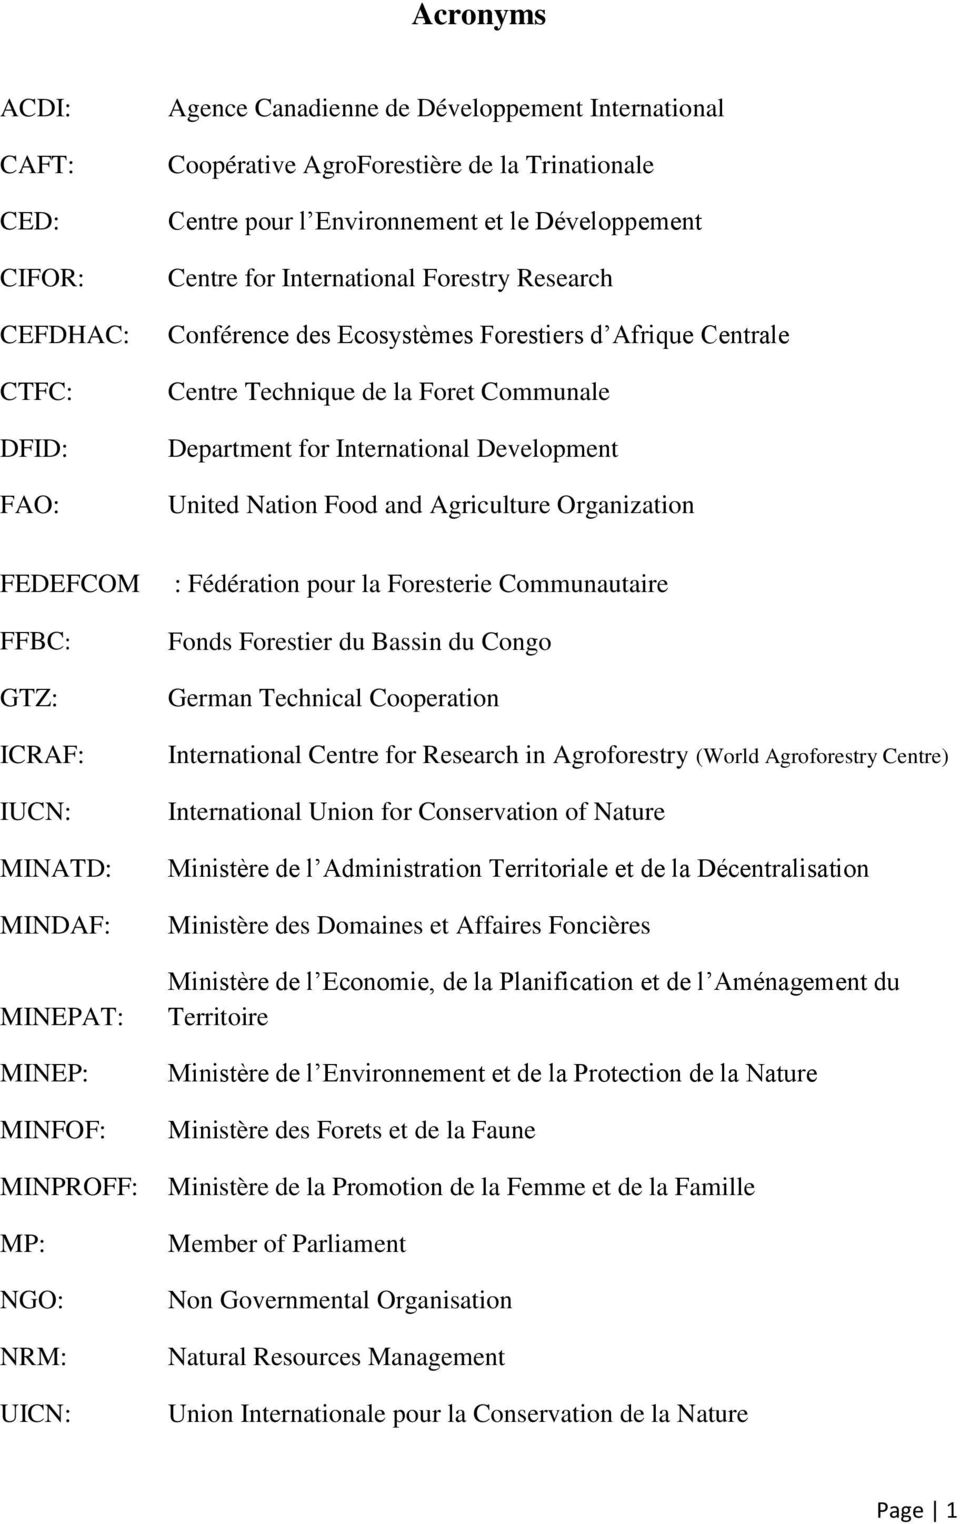 United Nation Food and Agriculture Organization FEDEFCOM FFBC: GTZ: ICRAF: IUCN: MINATD: MINDAF: MINEPAT: MINEP: MINFOF: MINPROFF: MP: NGO: NRM: UICN: : Fédération pour la Foresterie Communautaire